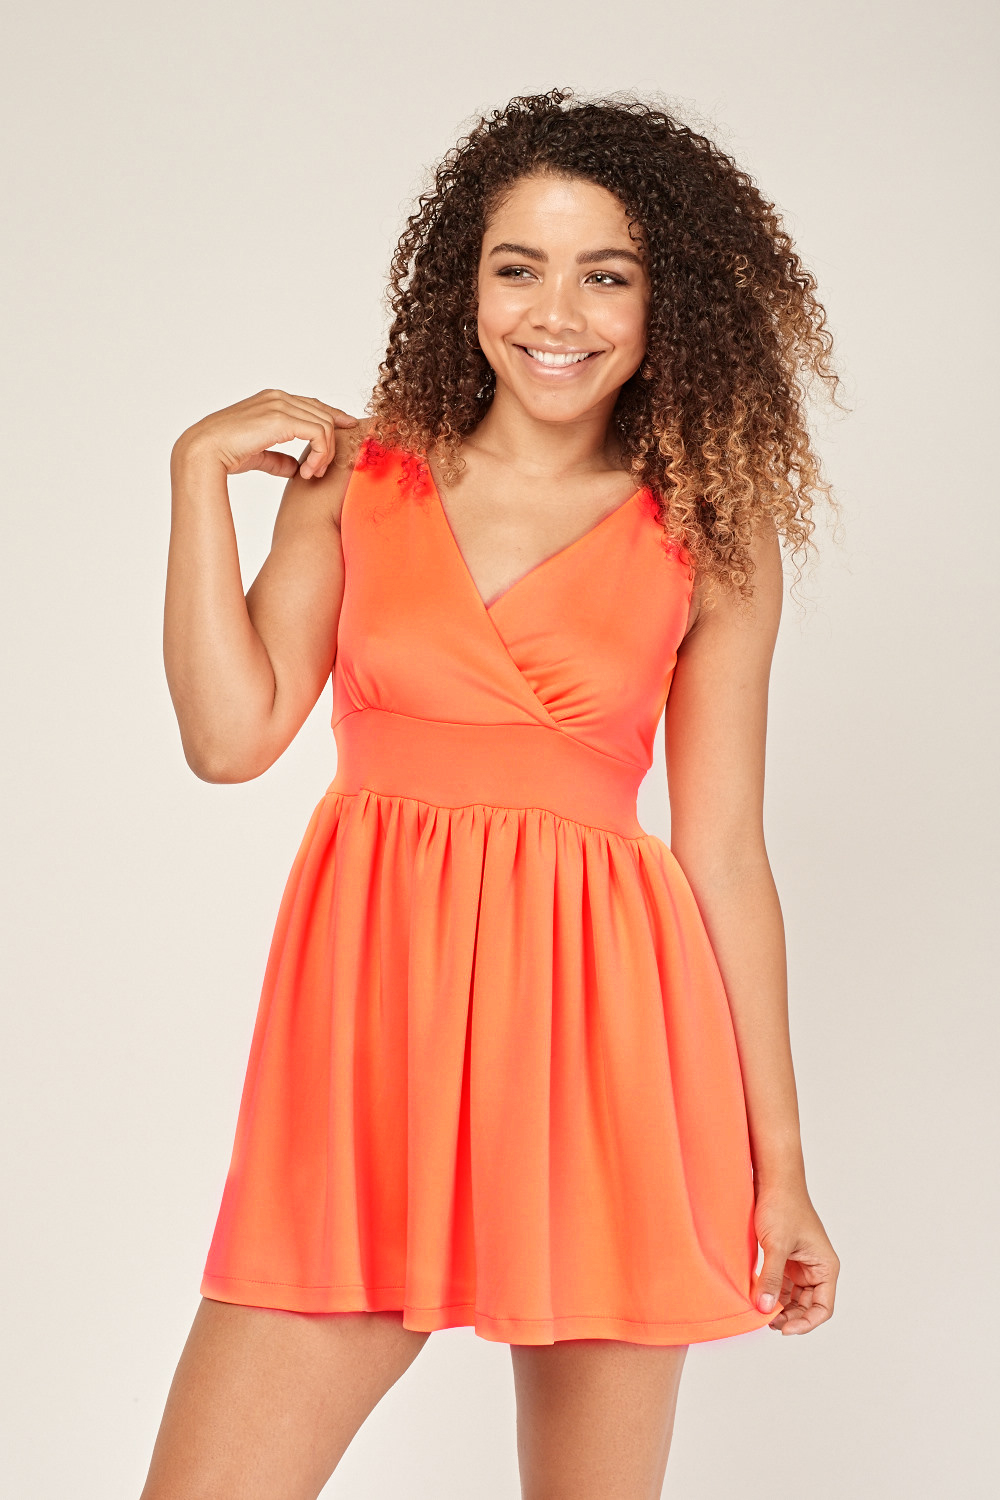 5978dc73a4 Frilly Wrap Skater Dress. £5.00. ColourNeon Coral. Mint  Neon Coral